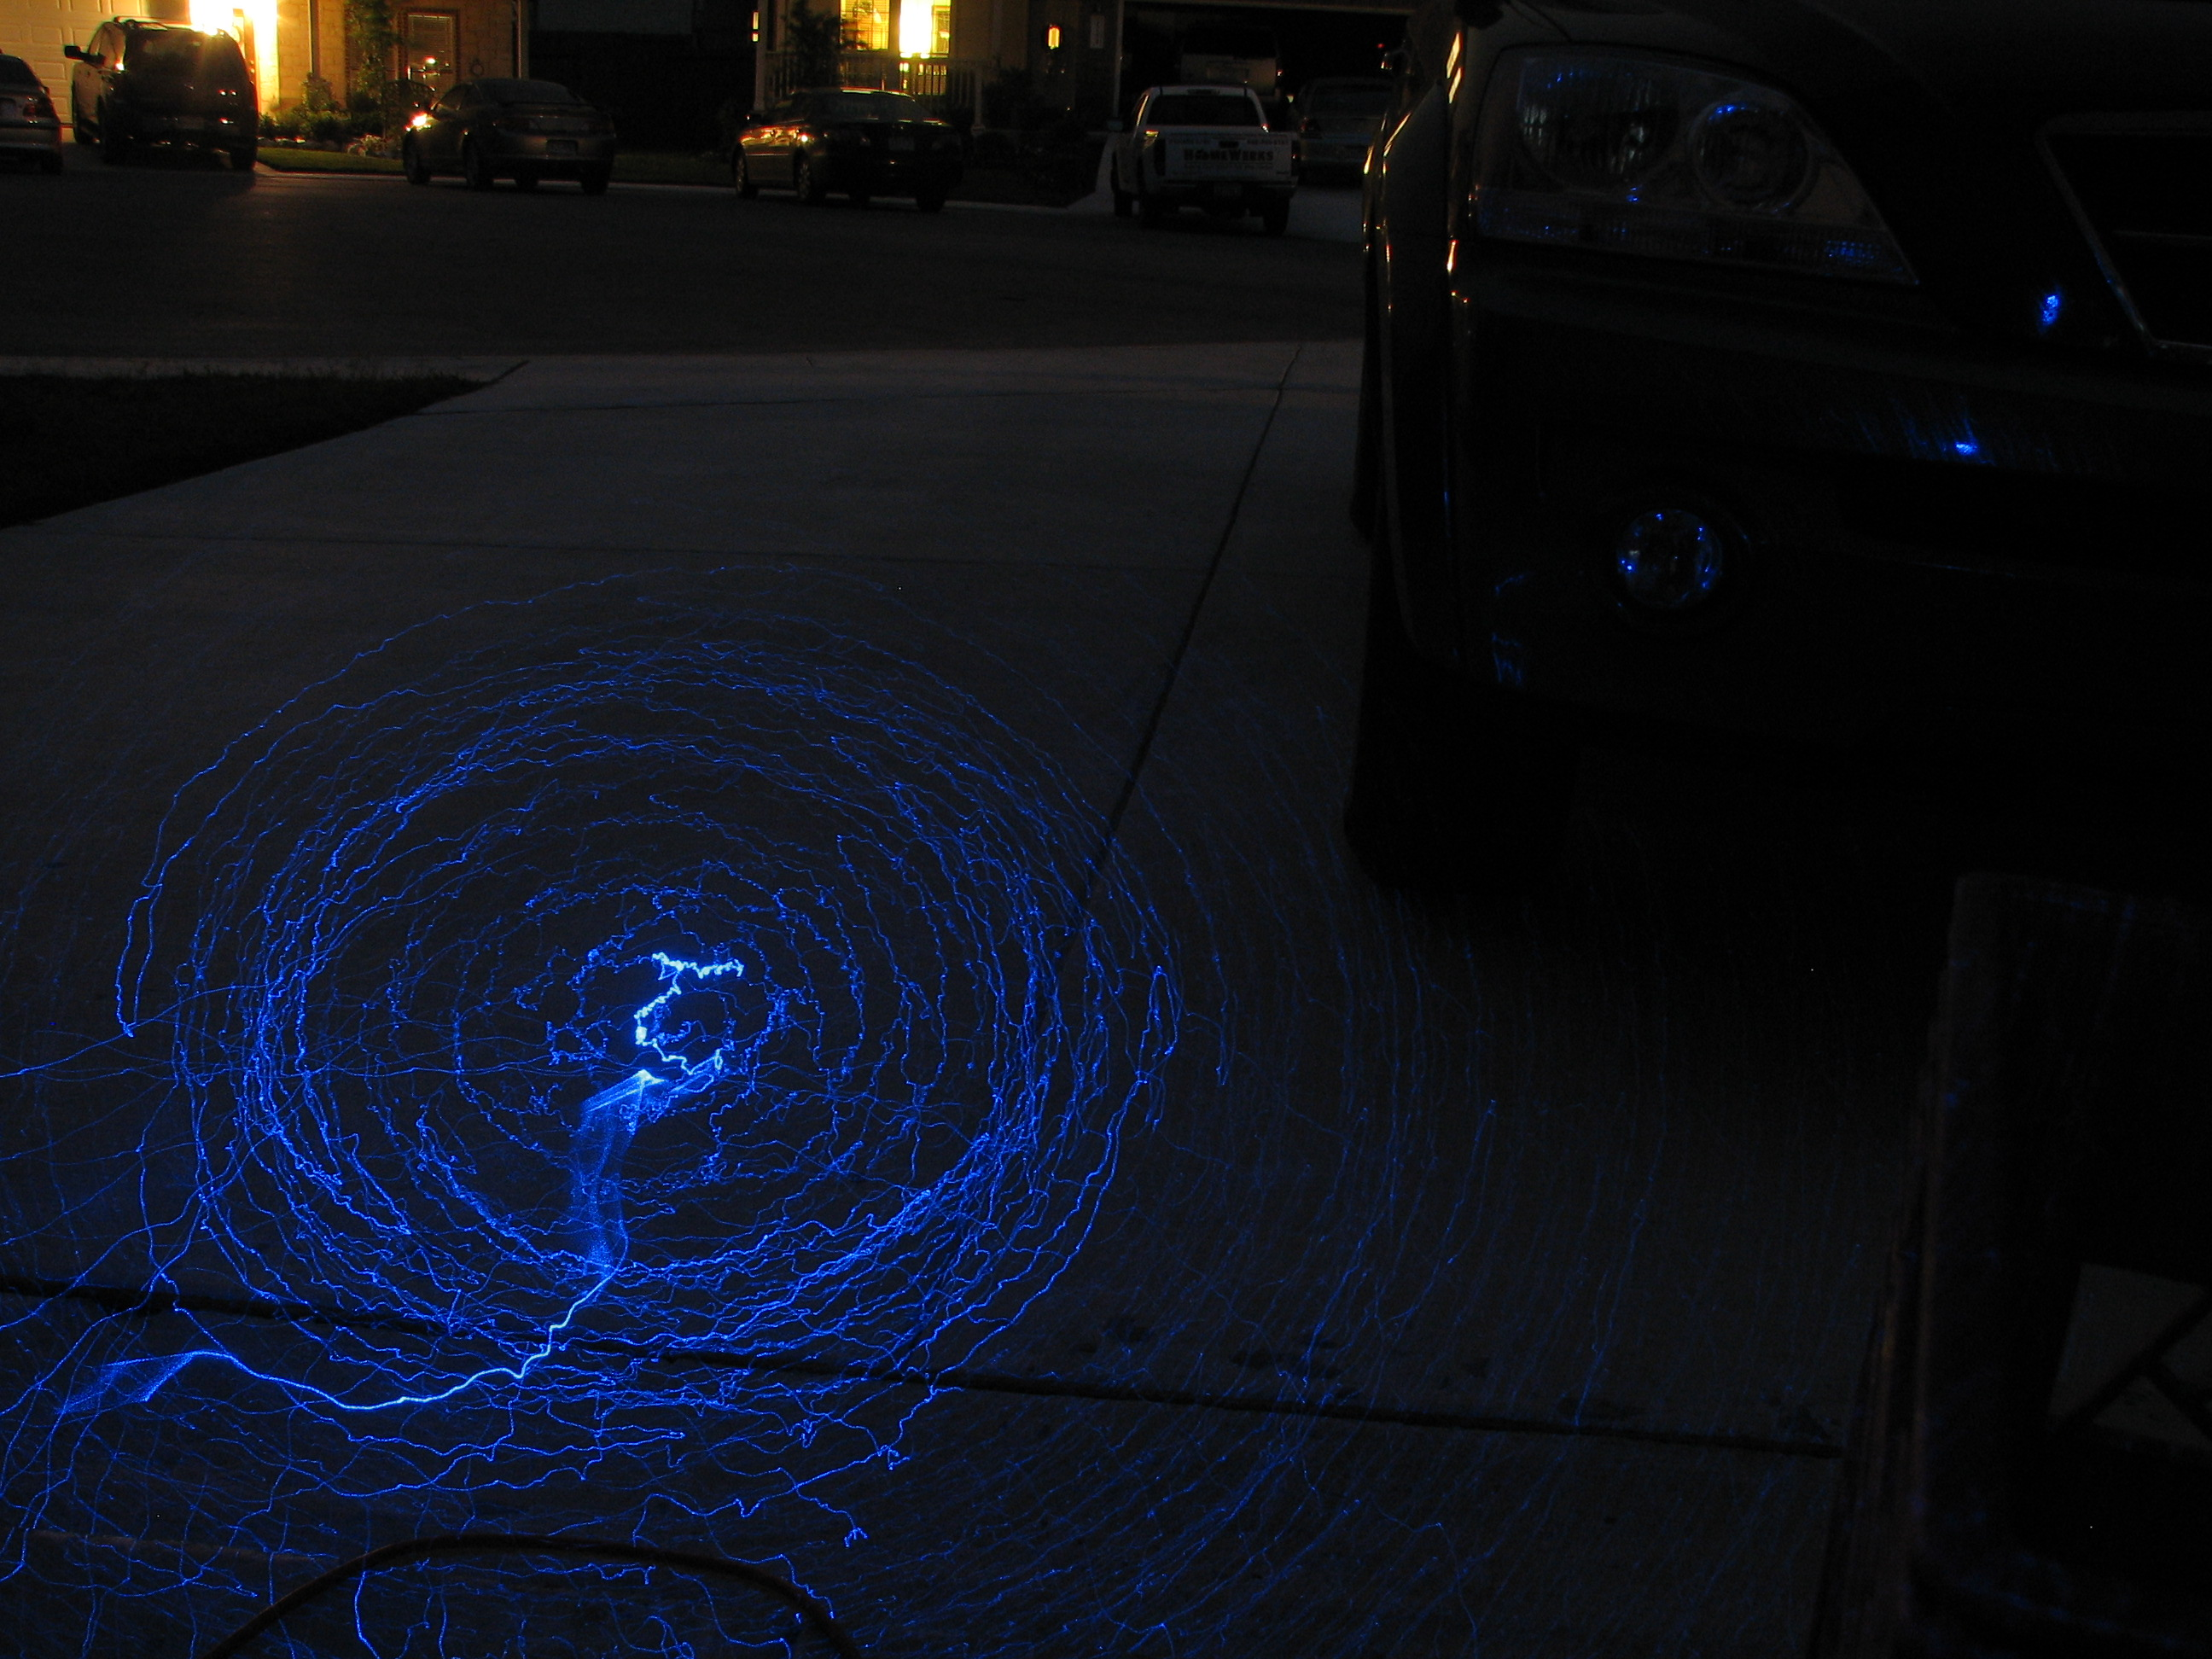 How to write with a blue or green laser pointer and take photos